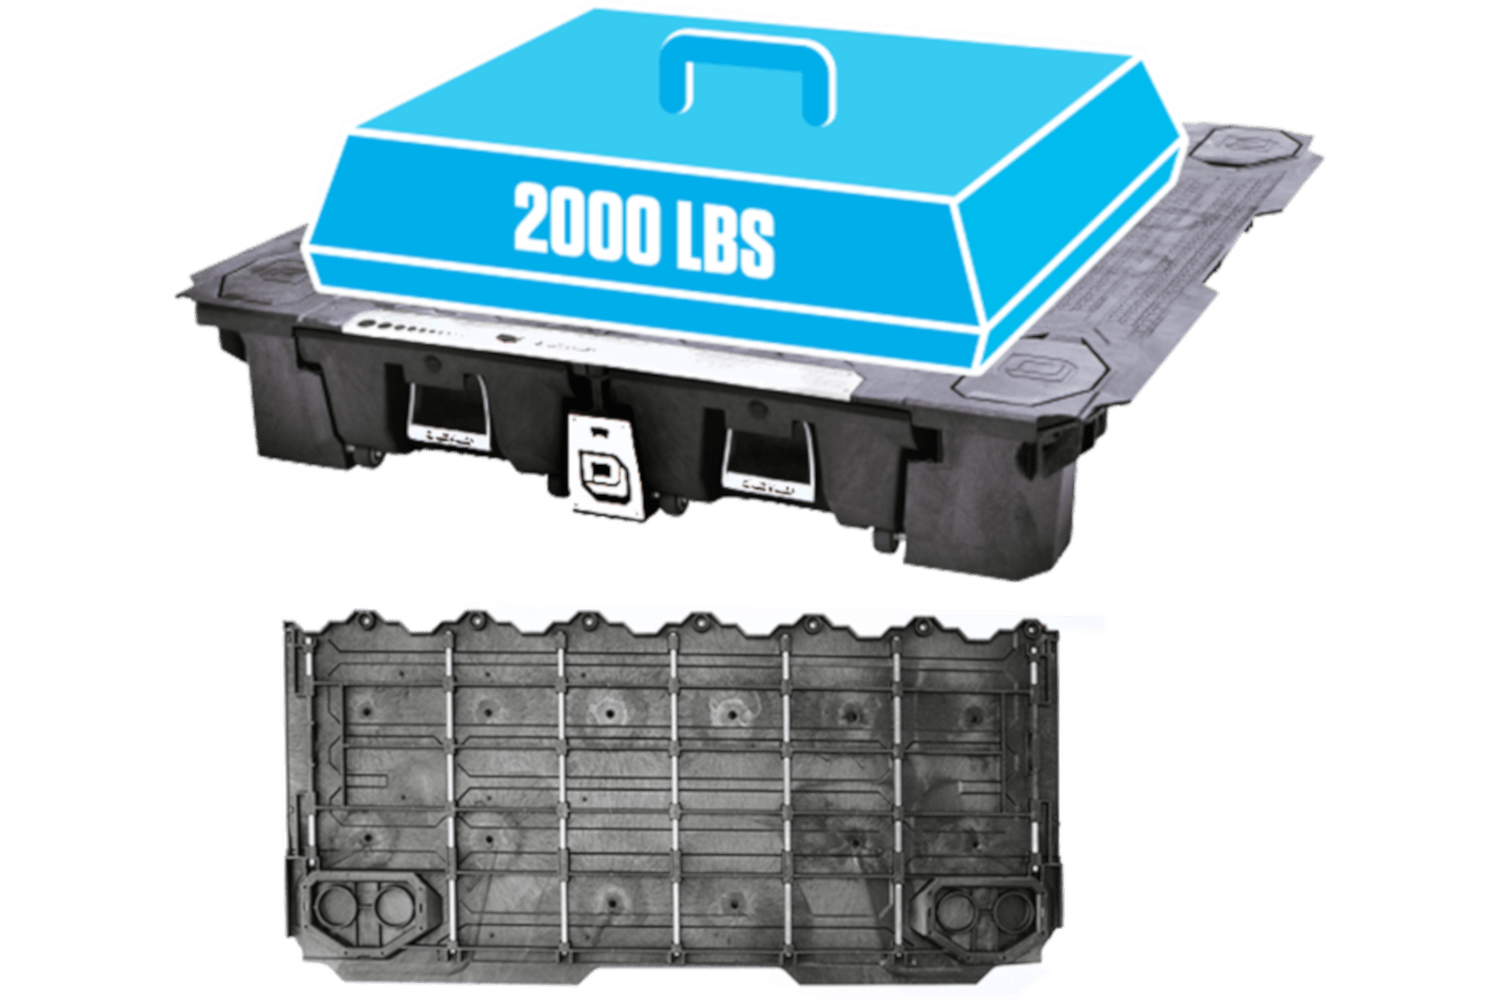 decked full size truck bed system supports 2000 lbs evenly.